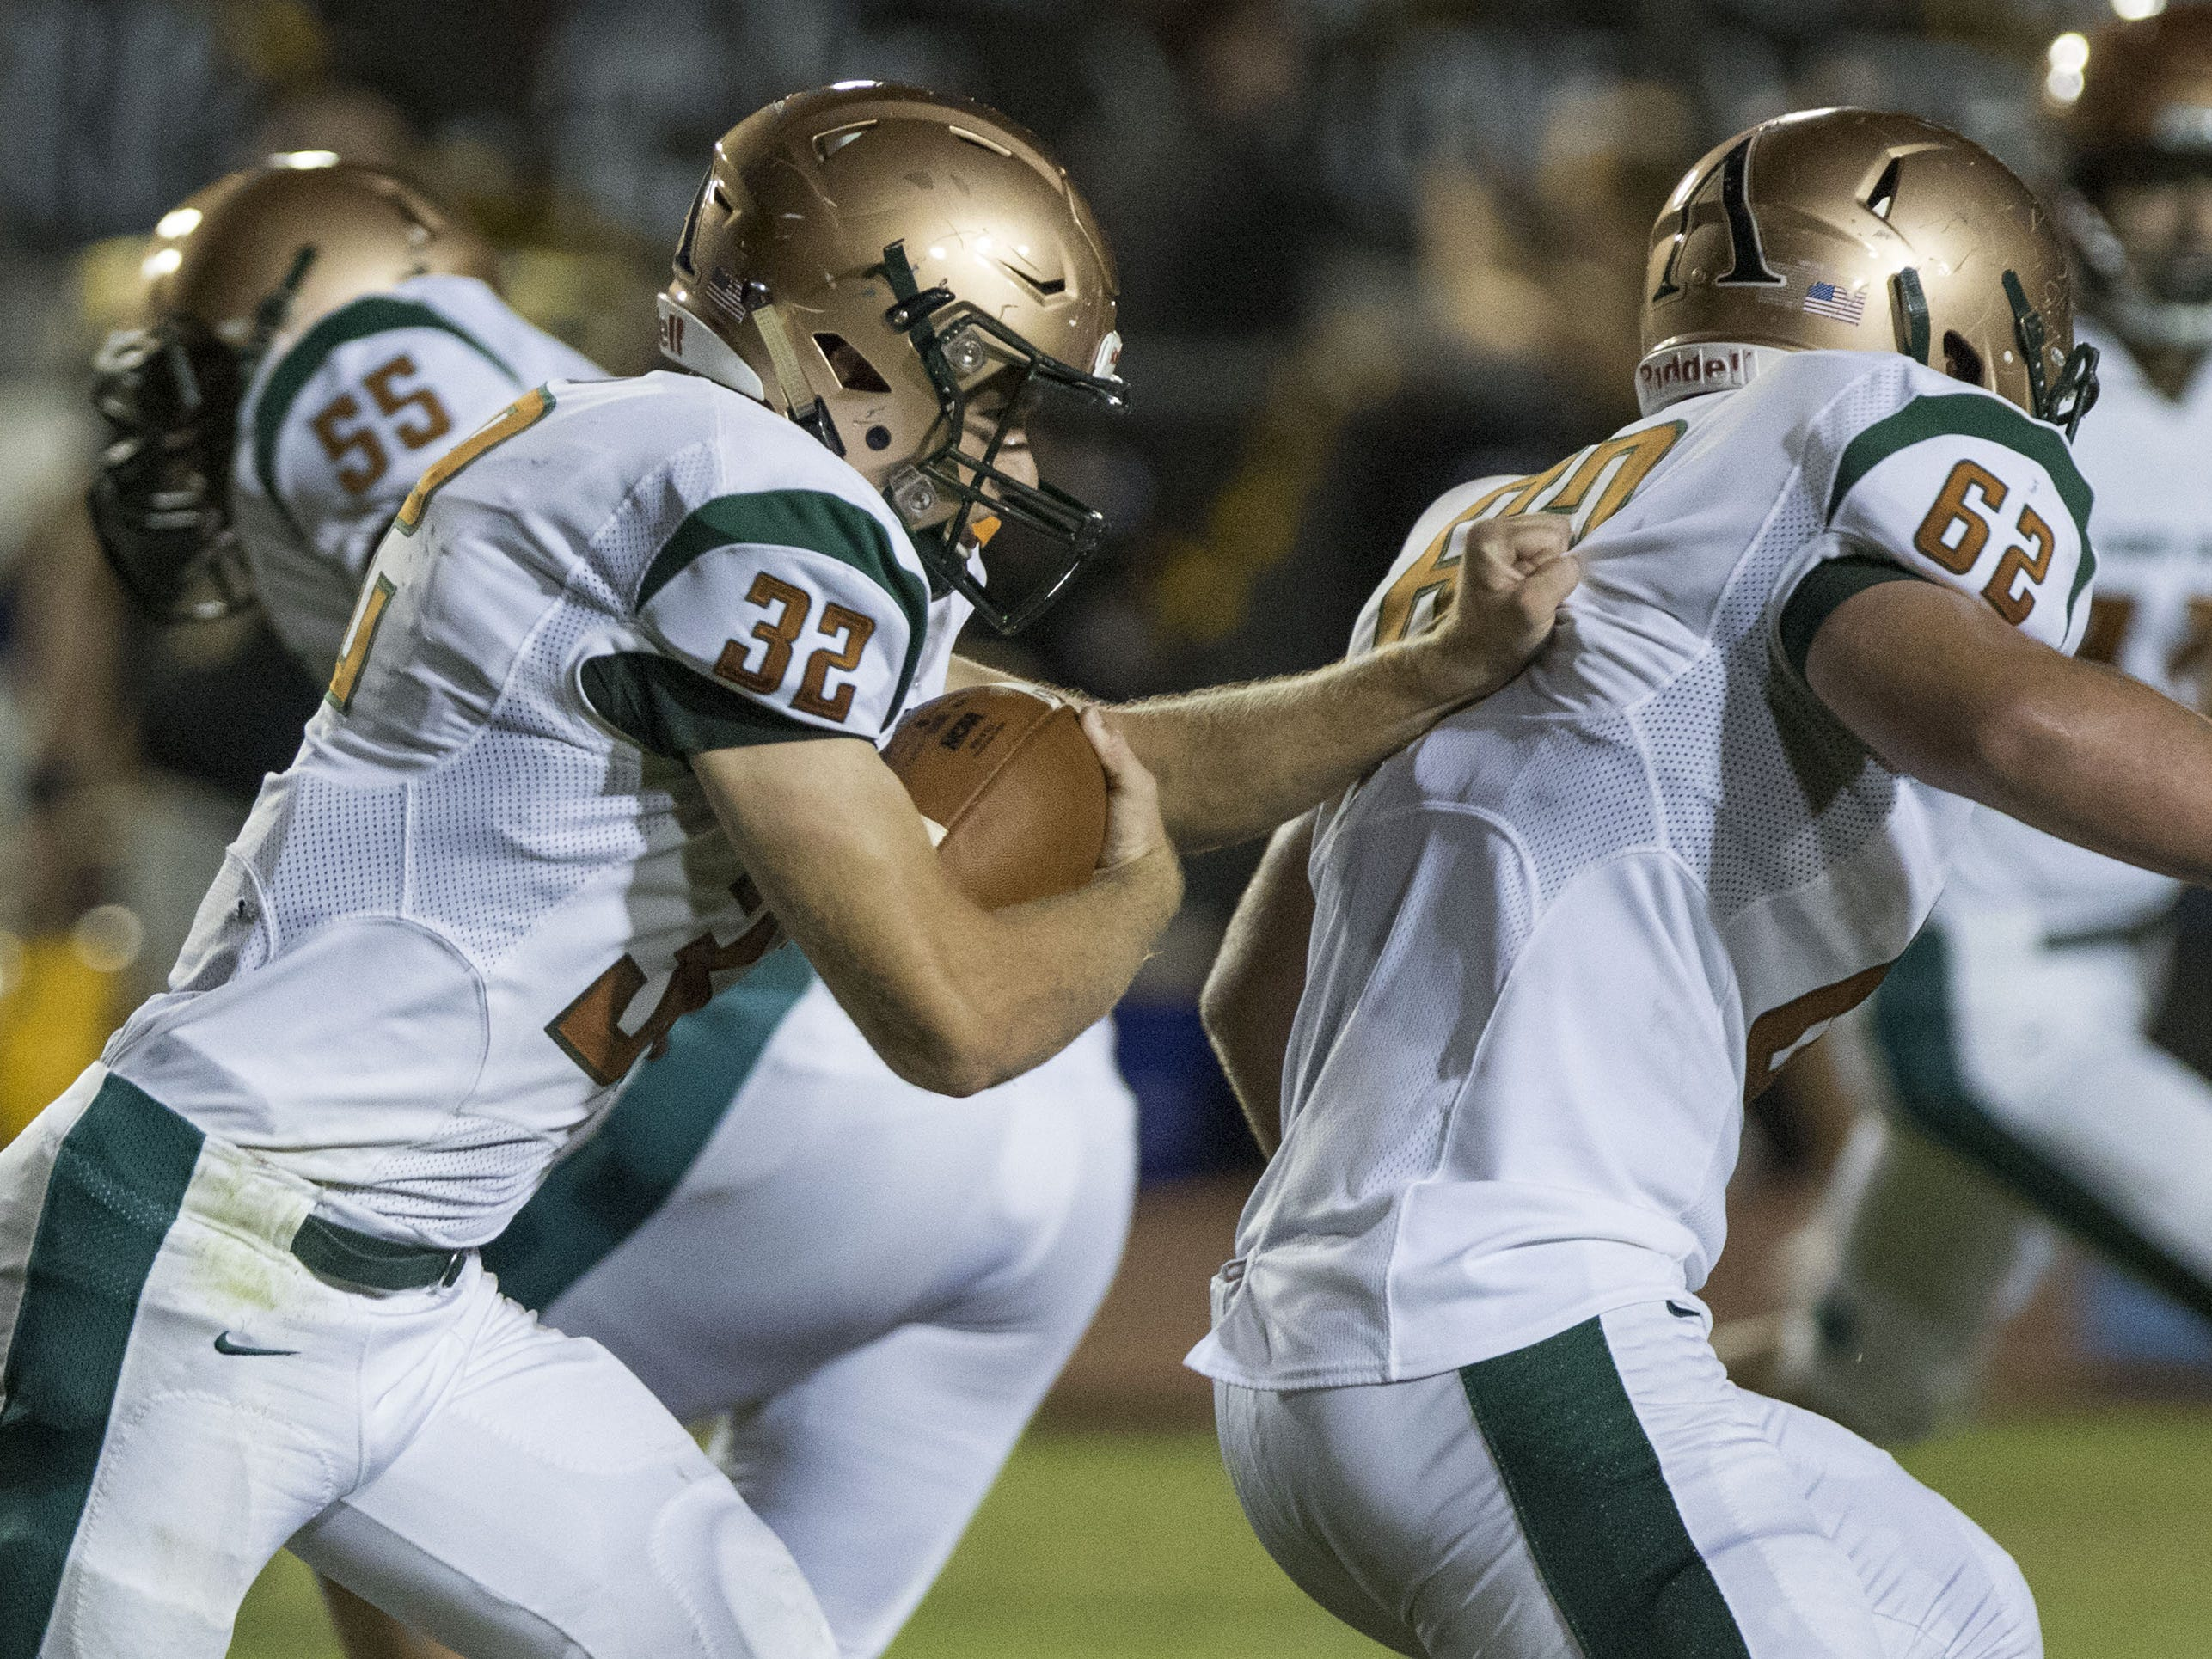 Campo Verde's Matt Leazier follows his blocker Jake Leighty during their game with Gilbert Friday, Sept. 21, 2018. #azhsfb